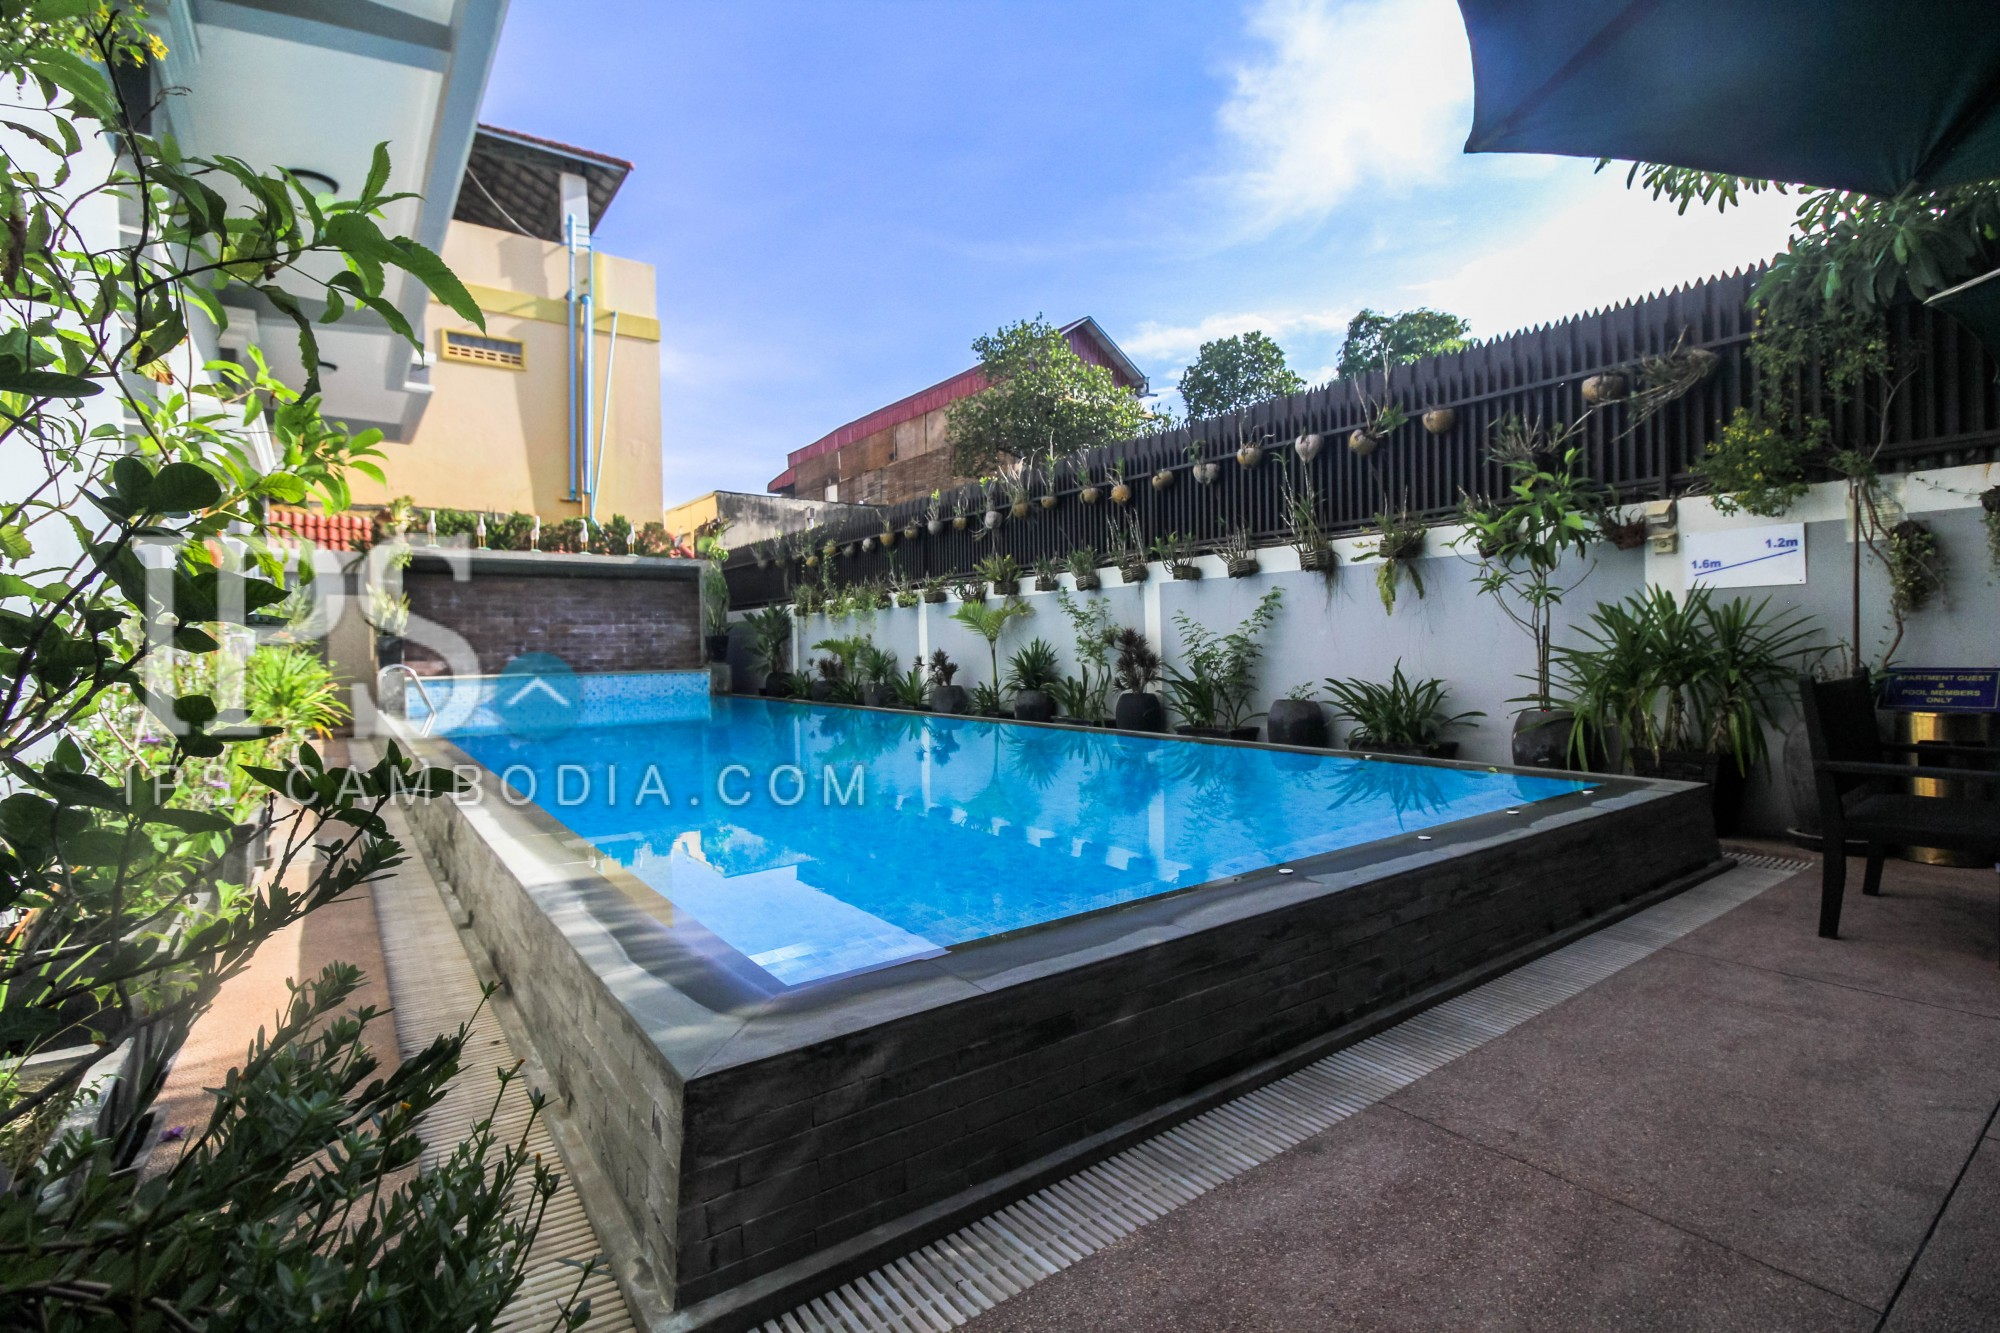 2 Bedrooms Apartment For Rent - Kouk Chak, Siem Reap